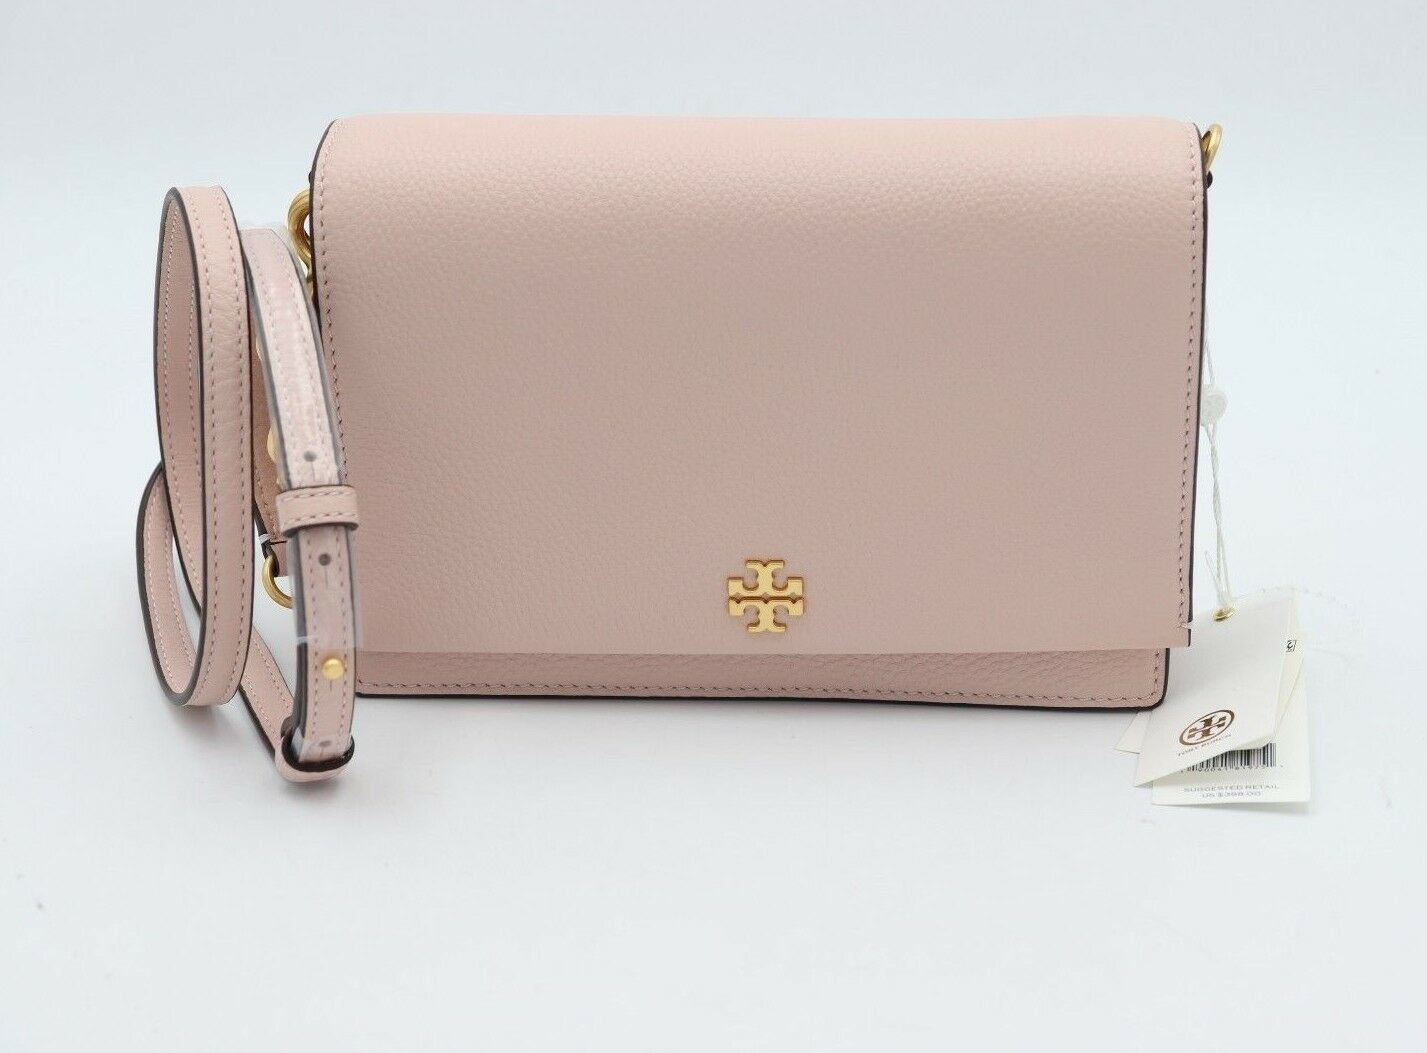 Primary image for NWT Tory Burch Georgia Pink Pebbled Leather Combo Crossbody Bag Clutch New $398